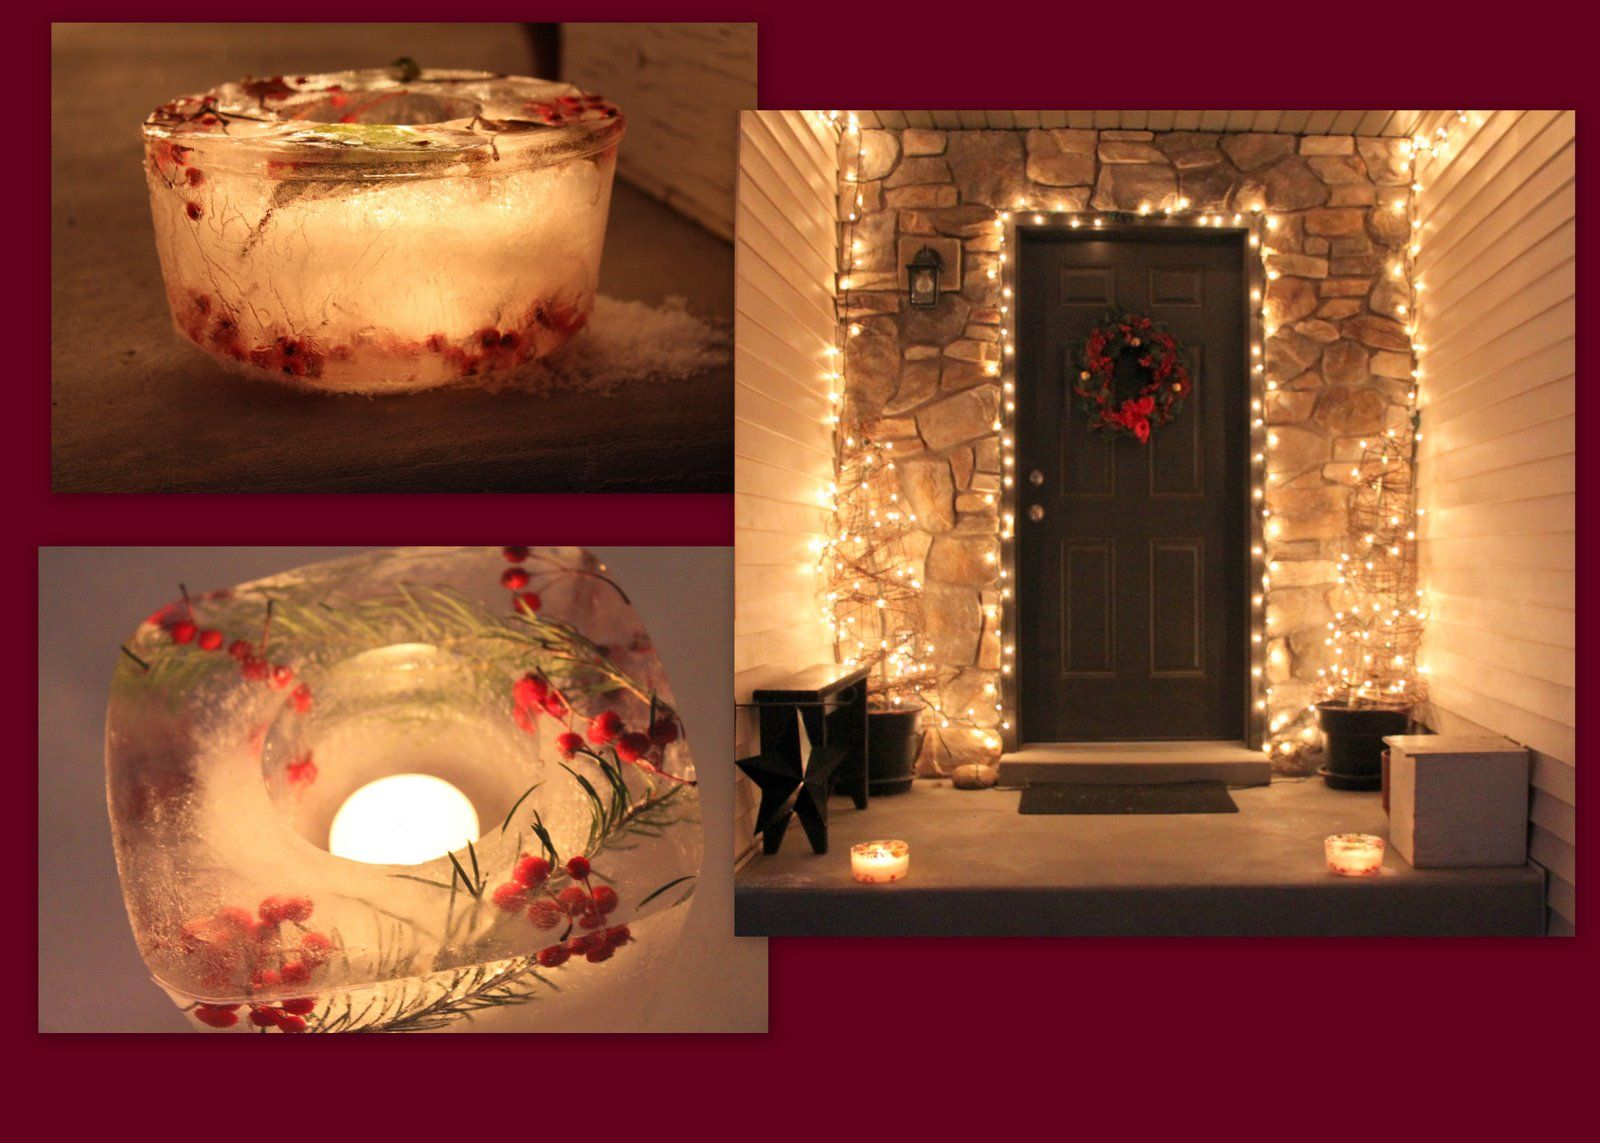 How to make christmas centerpieces with ice - Unique Outdoor Christmas Lights Ideas Ideas For Outdoor Christmas Decorations